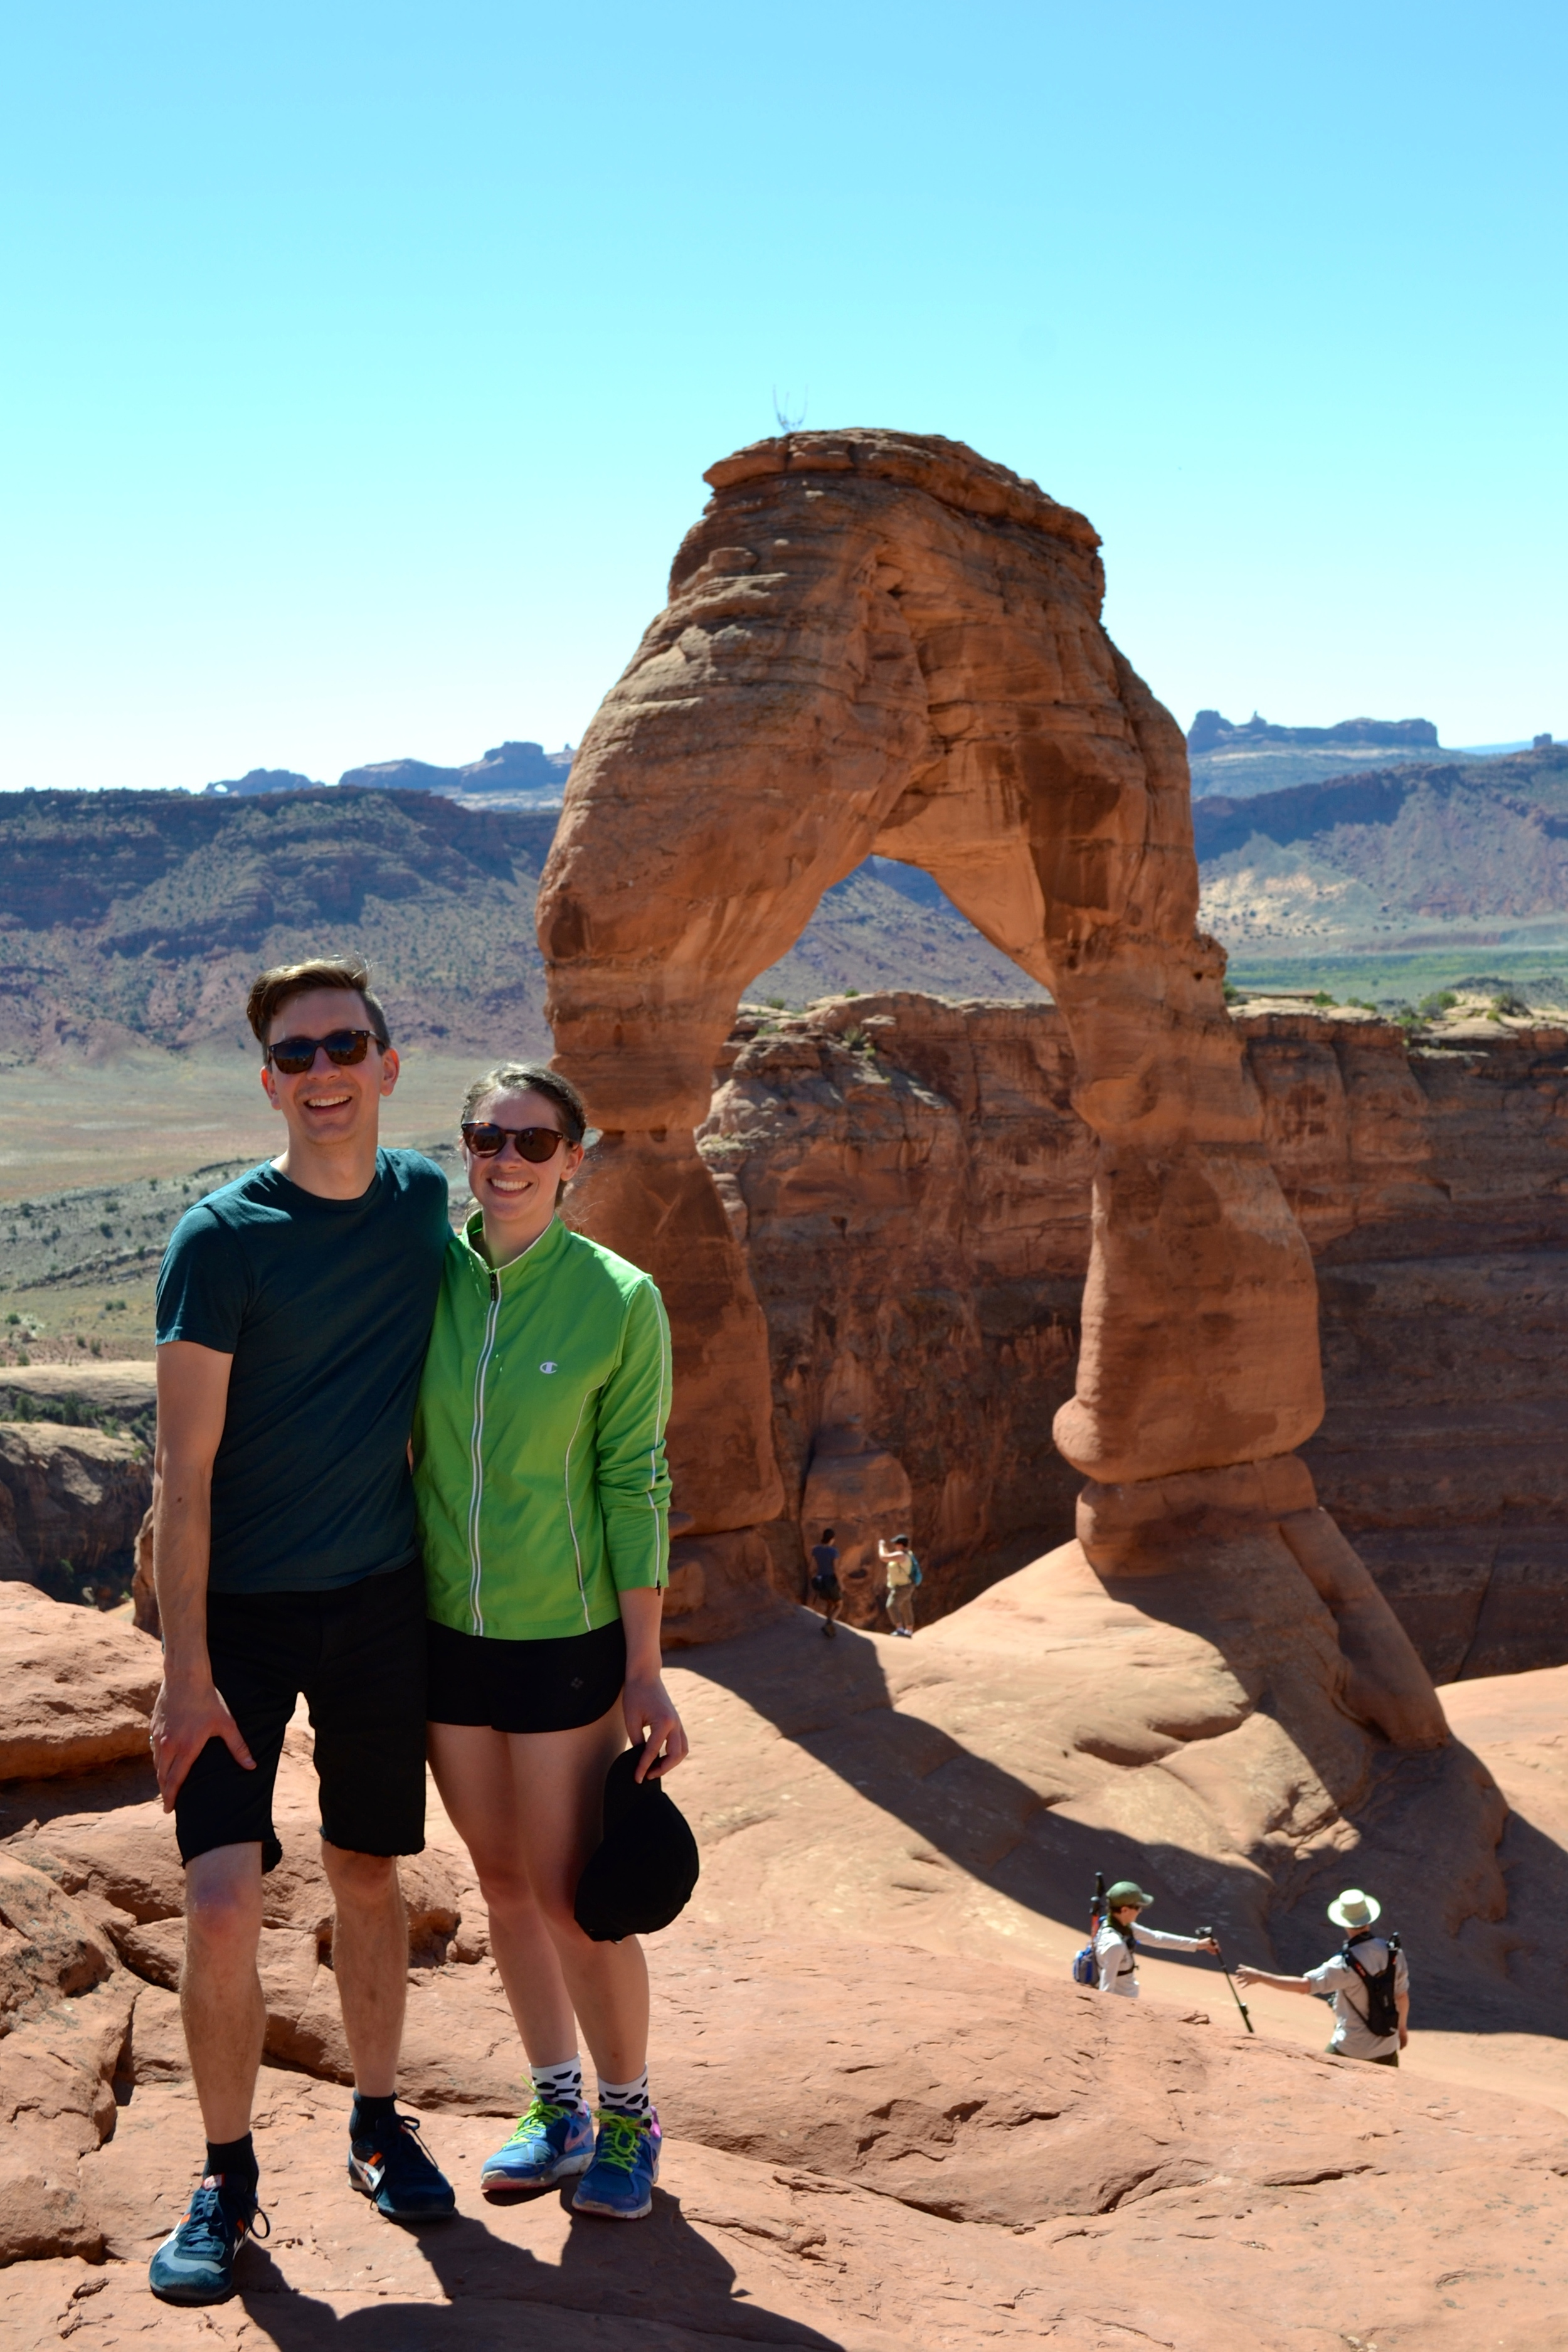 arches-national-park-main-arch